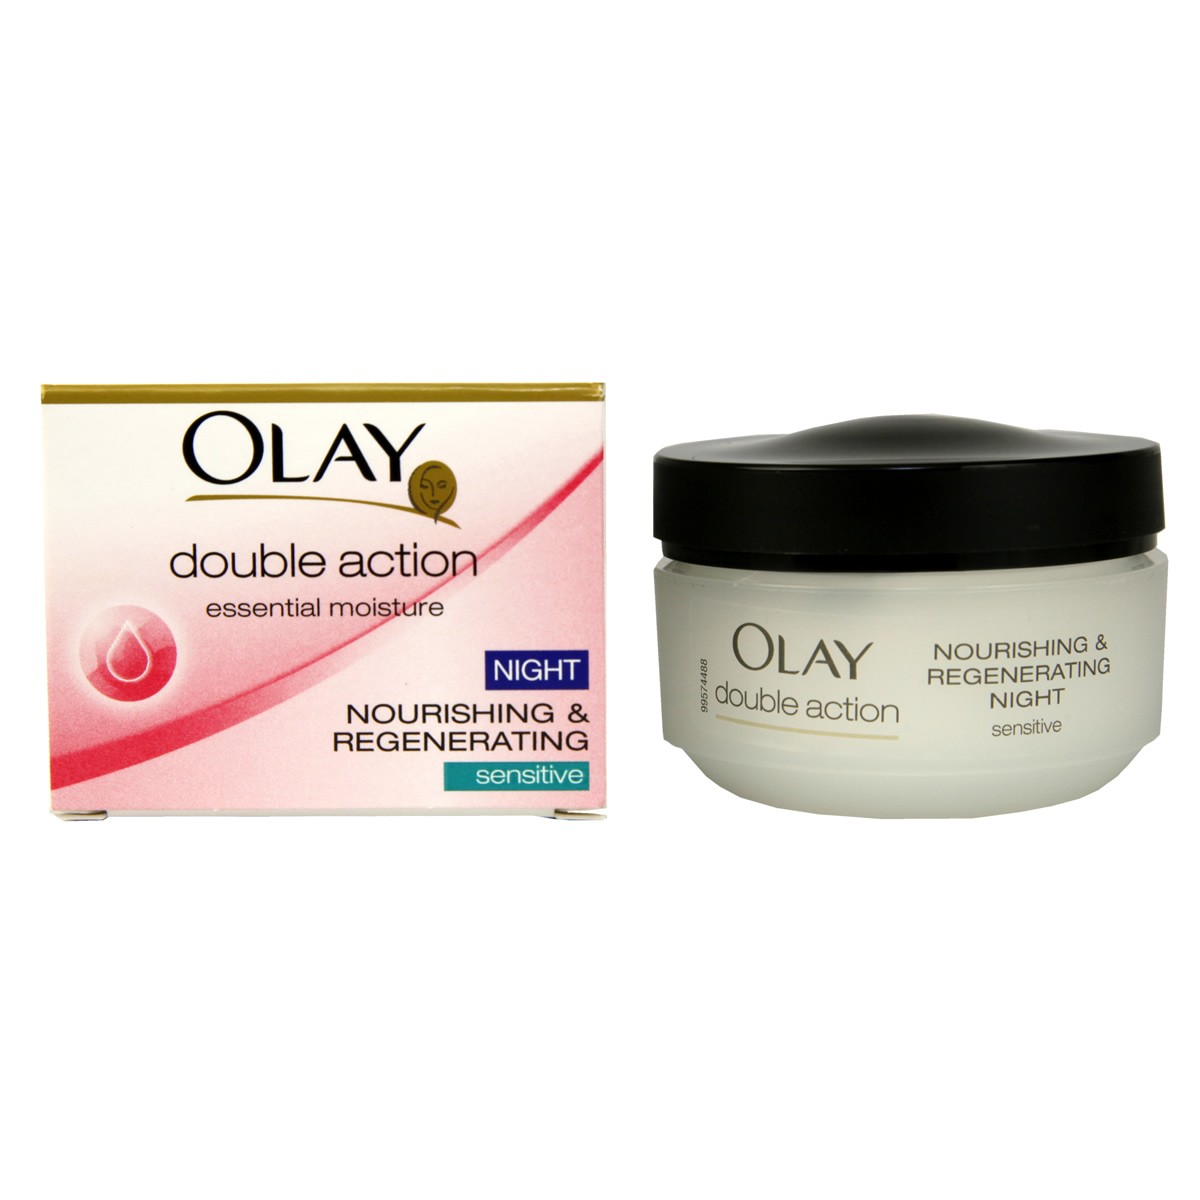 Olay Double Action Nourishing & Regenerating Night Cream - Sensitive Skin